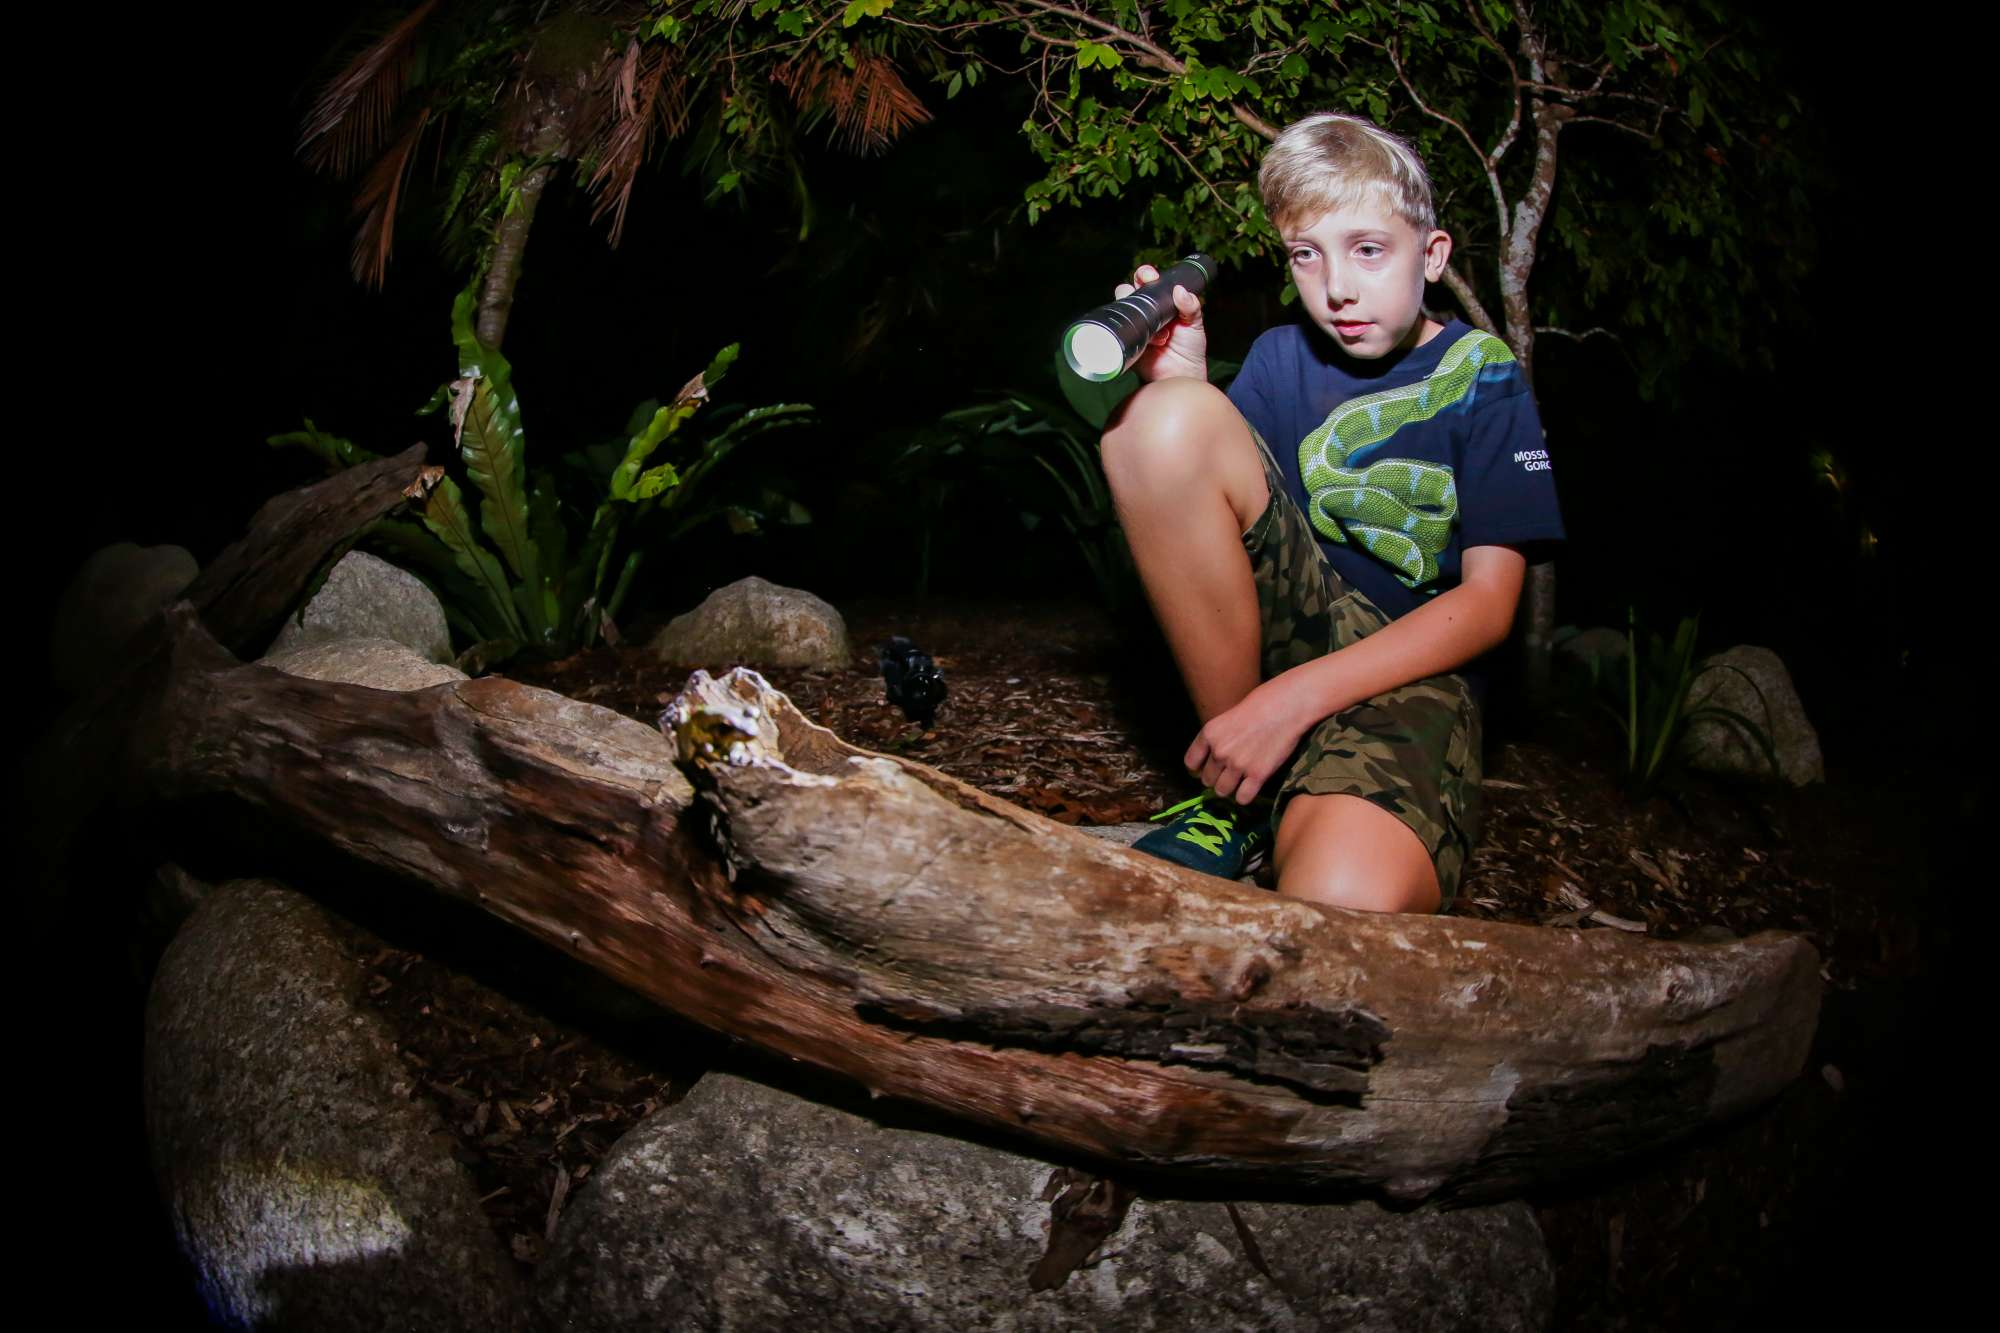 A boy with a torch shines light on a frog sitting on a log